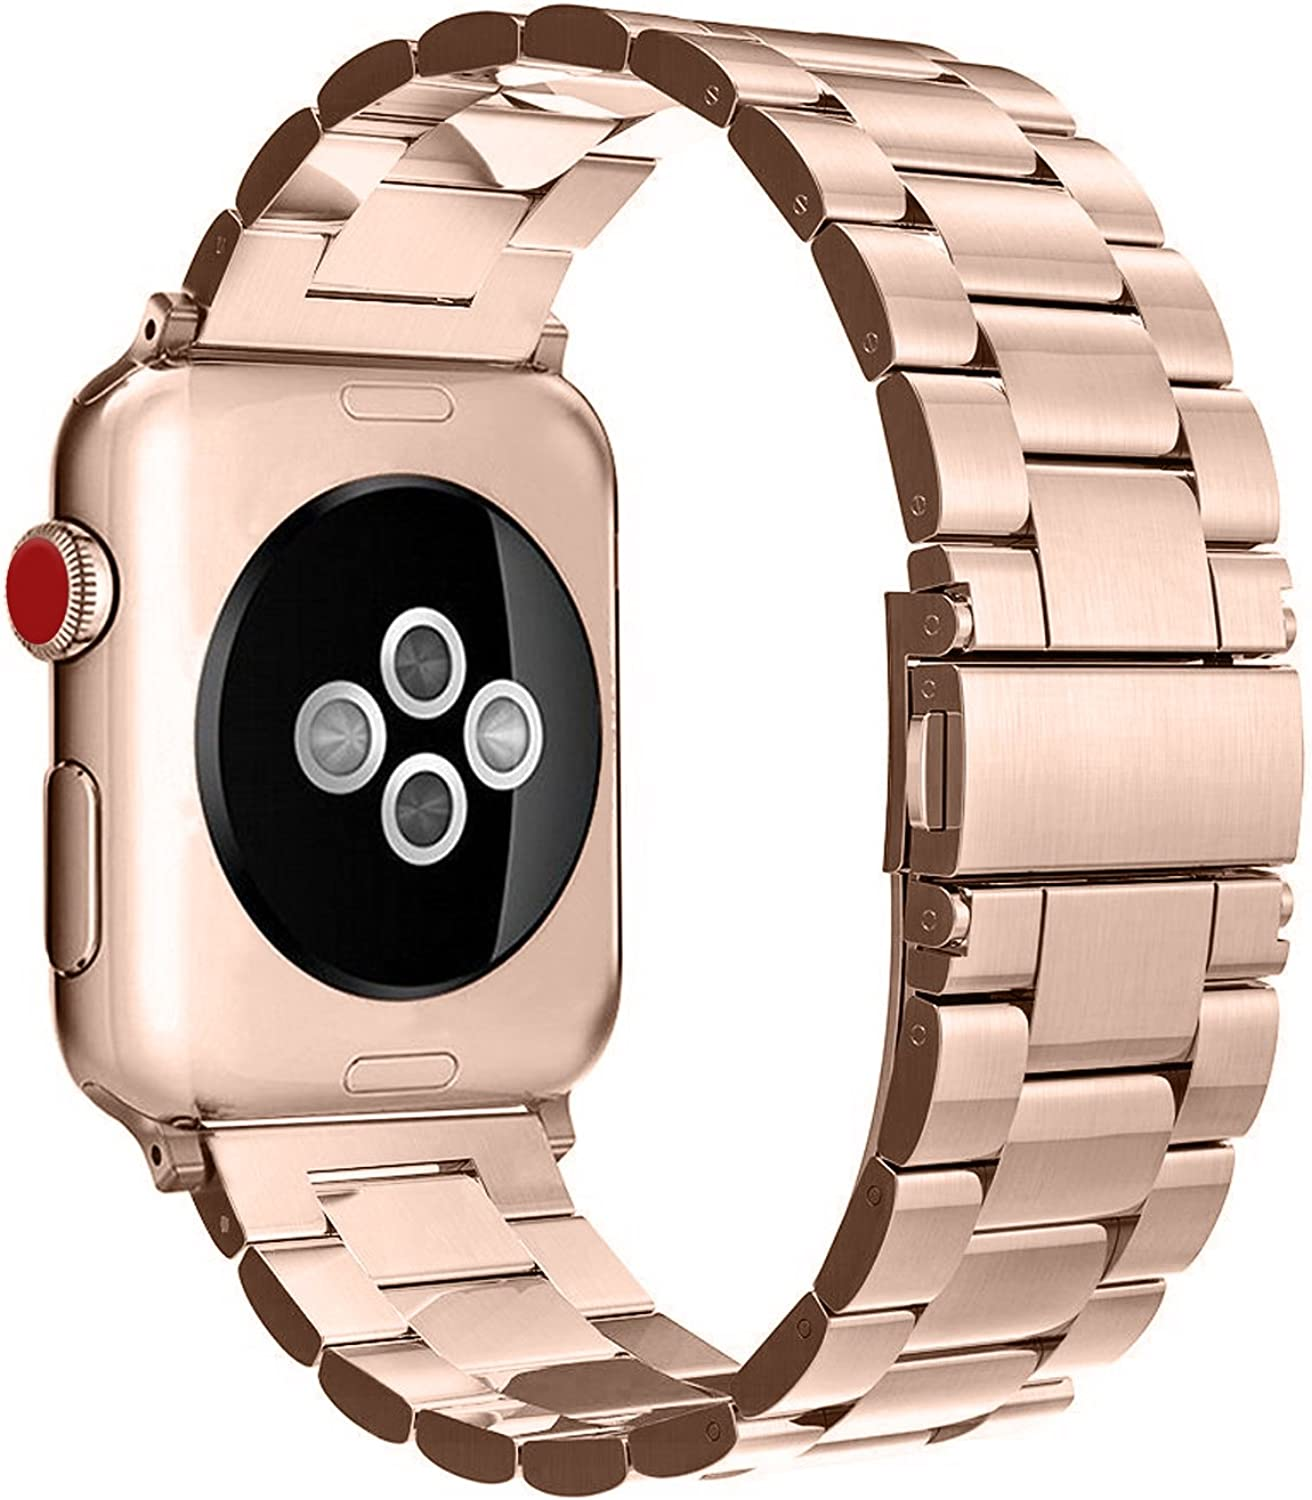 Fintie Band Compatible with Apple Watch 44mm 42mm Series 6/5/4/3/2/1/SE, Premium Stainless Steel Metal Replacement Wrist Strap Bracelet Compatible with All Versions 44mm 42mm Apple Watch, Rose Gold